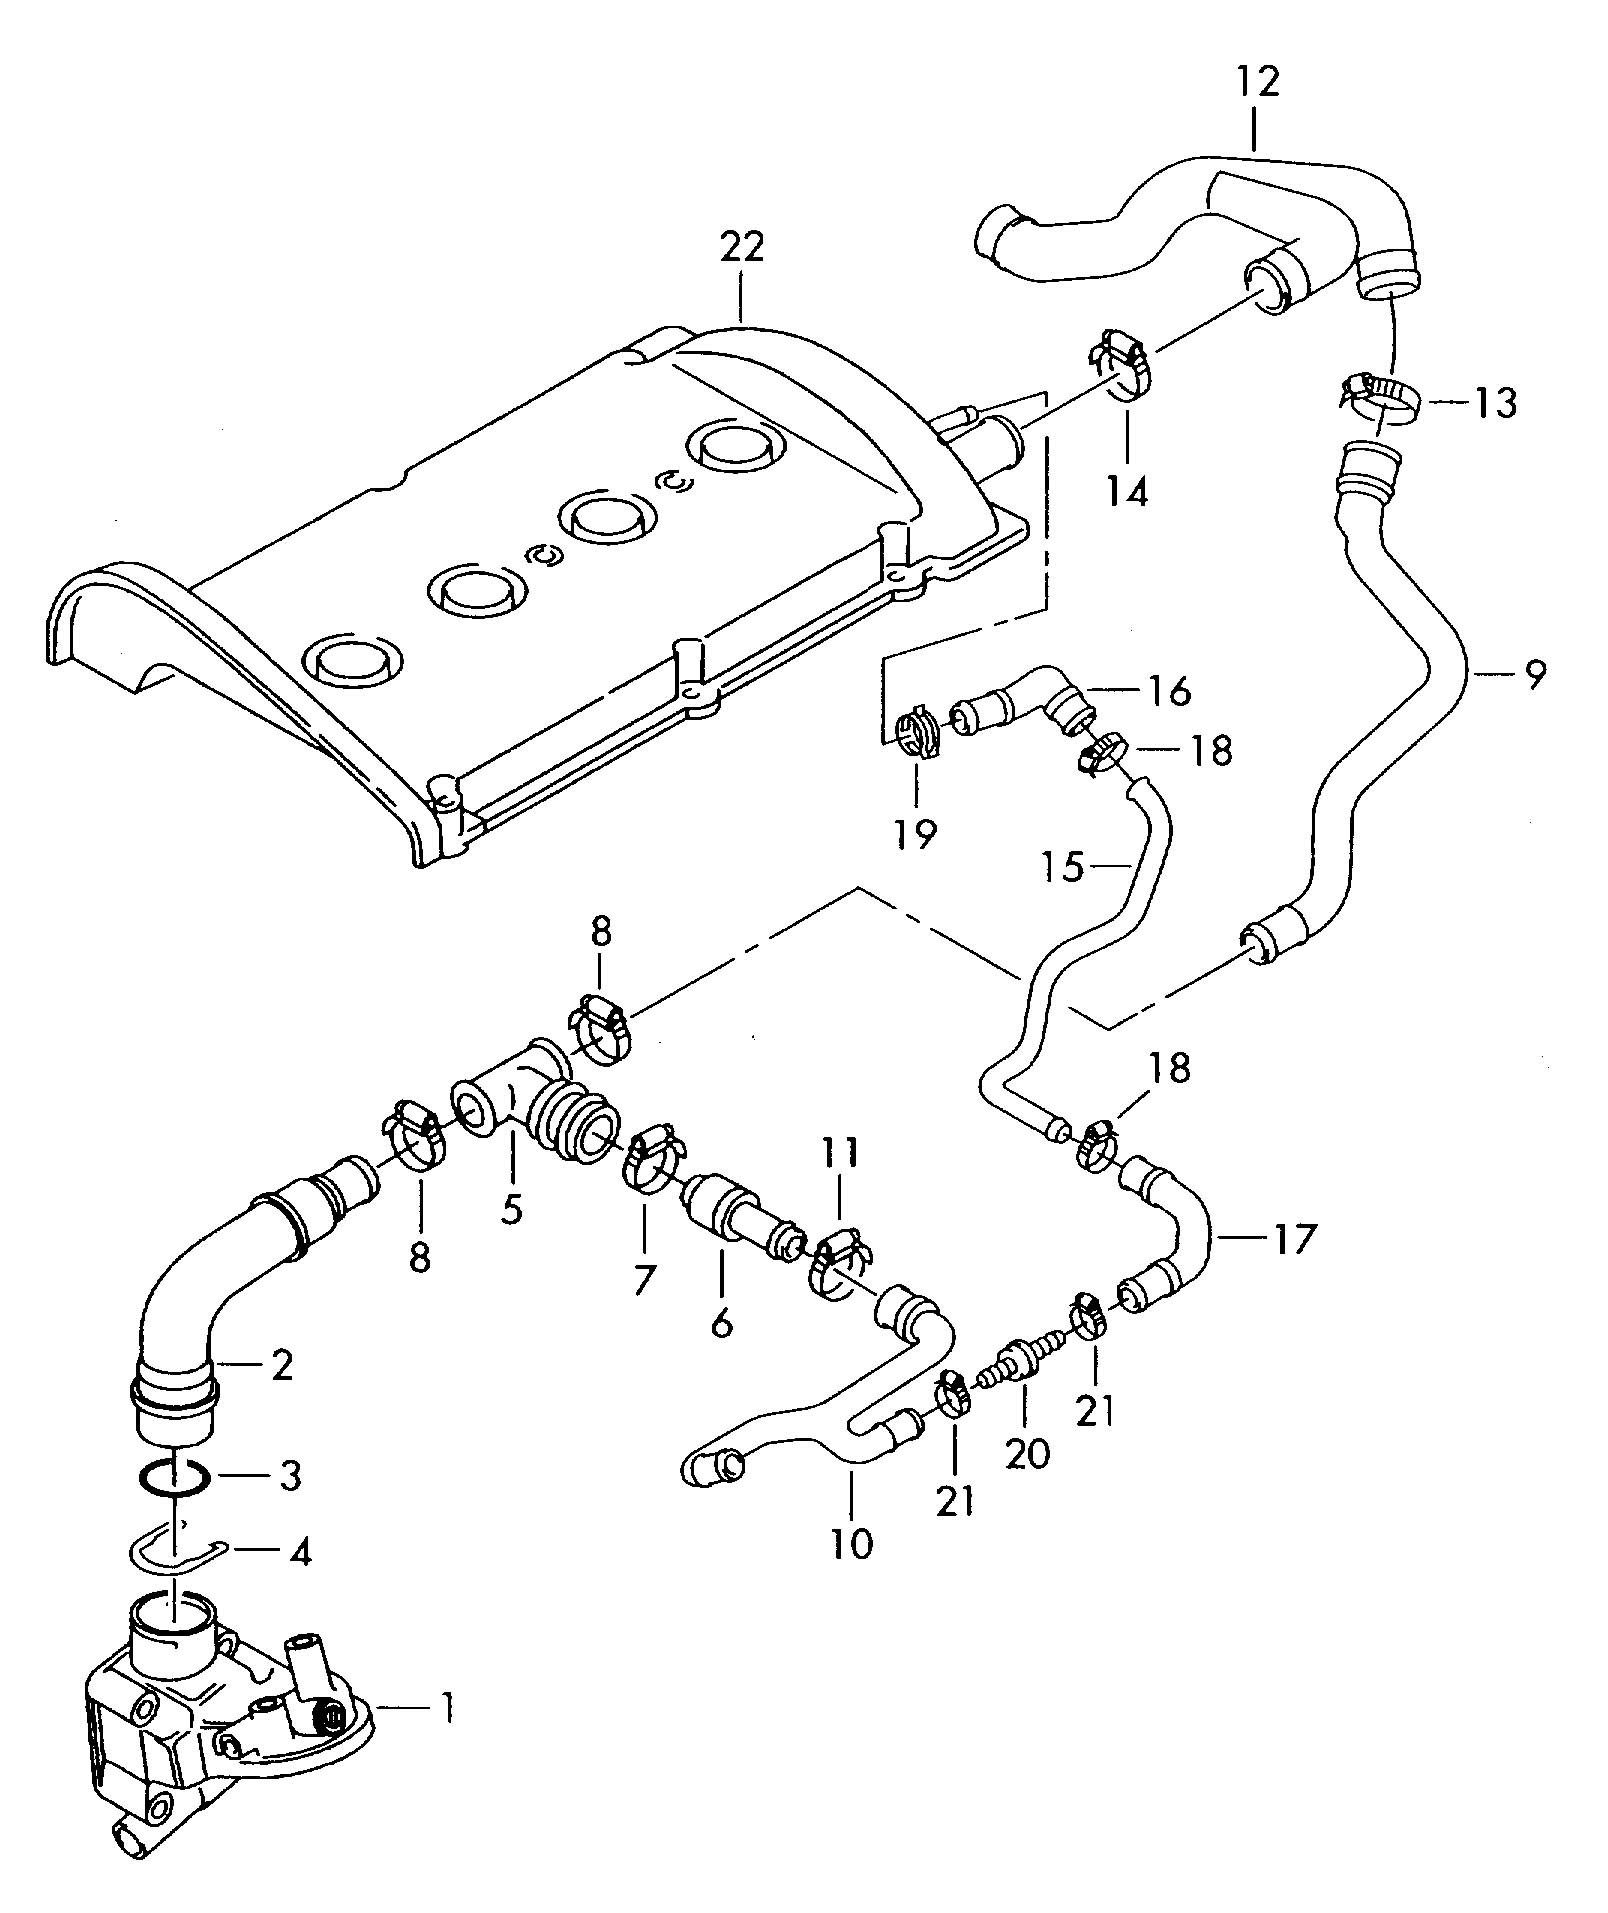 [WRG-1669] 2002 Volkswagen Passat Engine Hose Diagram